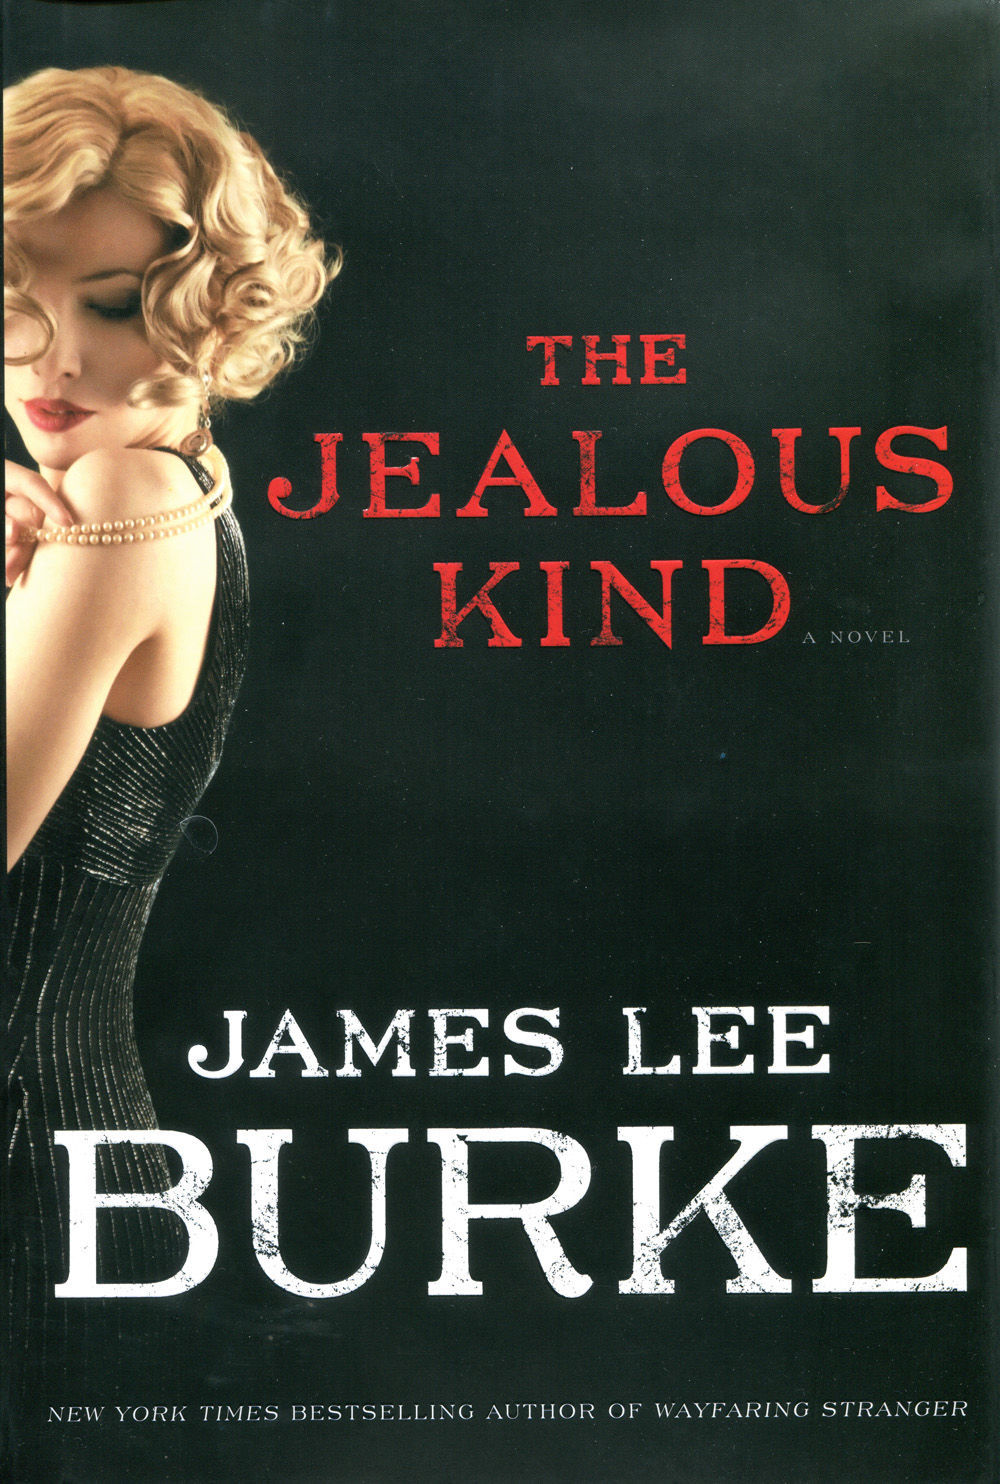 The Jealous Kind book cover